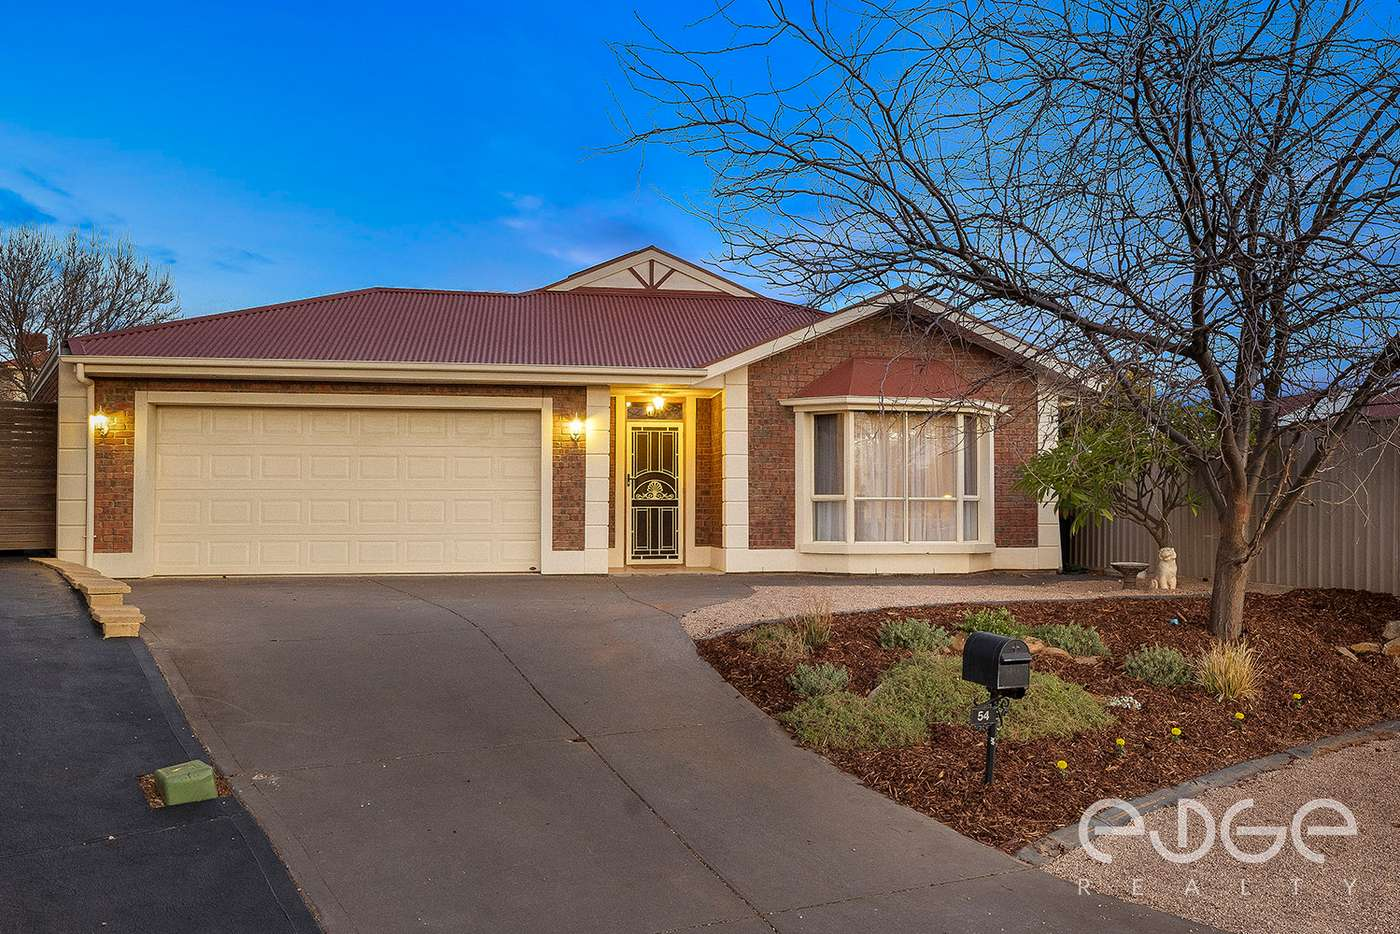 Main view of Homely house listing, 54 Wallace Drive, Craigmore SA 5114